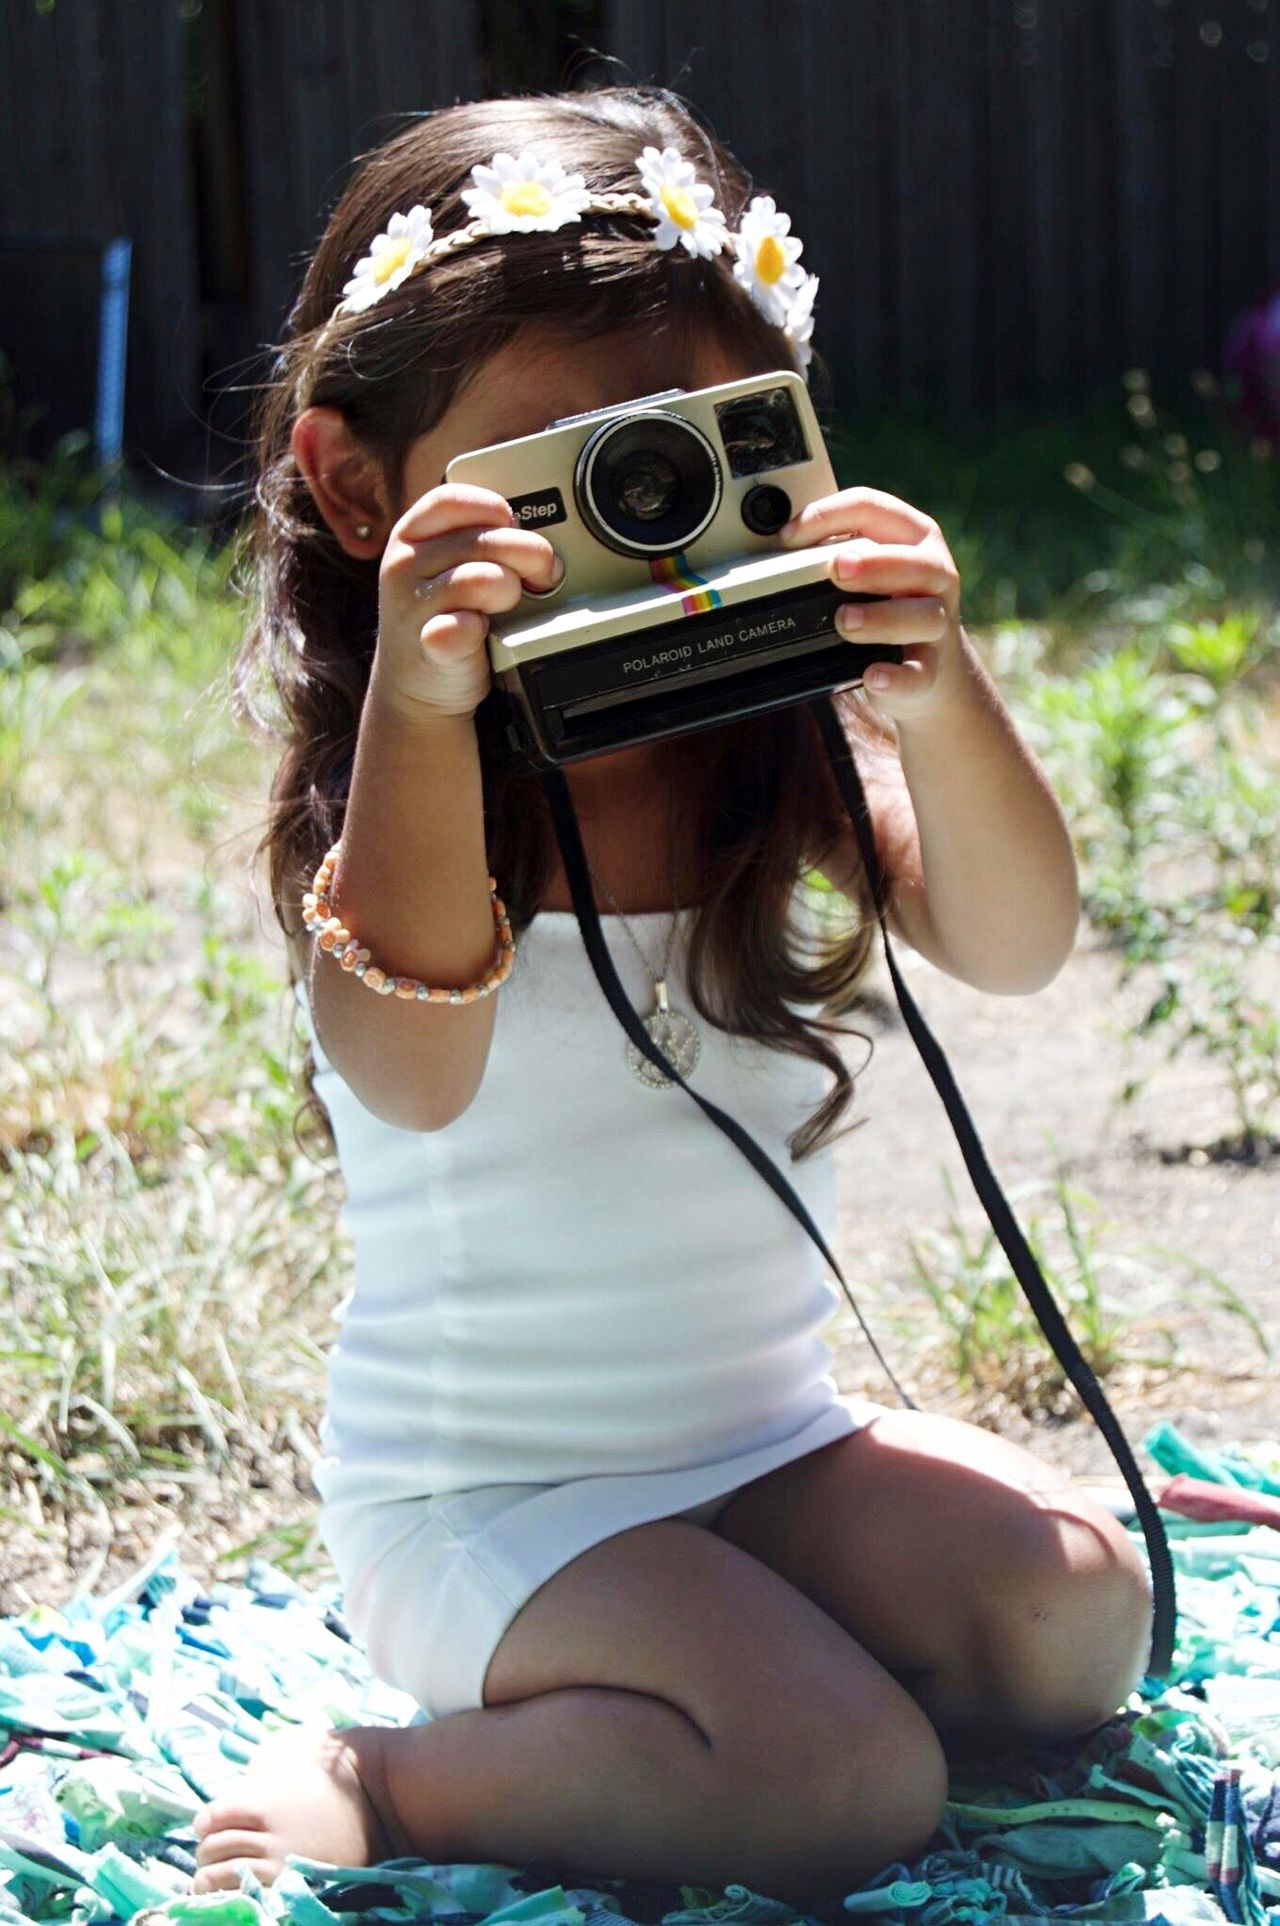 Camera - Photographic Equipment Summer Brown Hair One Person Old-fashioned Photography Themes Beauty Sitting Sunlight Holding Outdoors Fun Day Girl Childhood Flower Nature Grass Fouryearsold Posing Bright Detroit Enjoying Life Long Hair Cutie